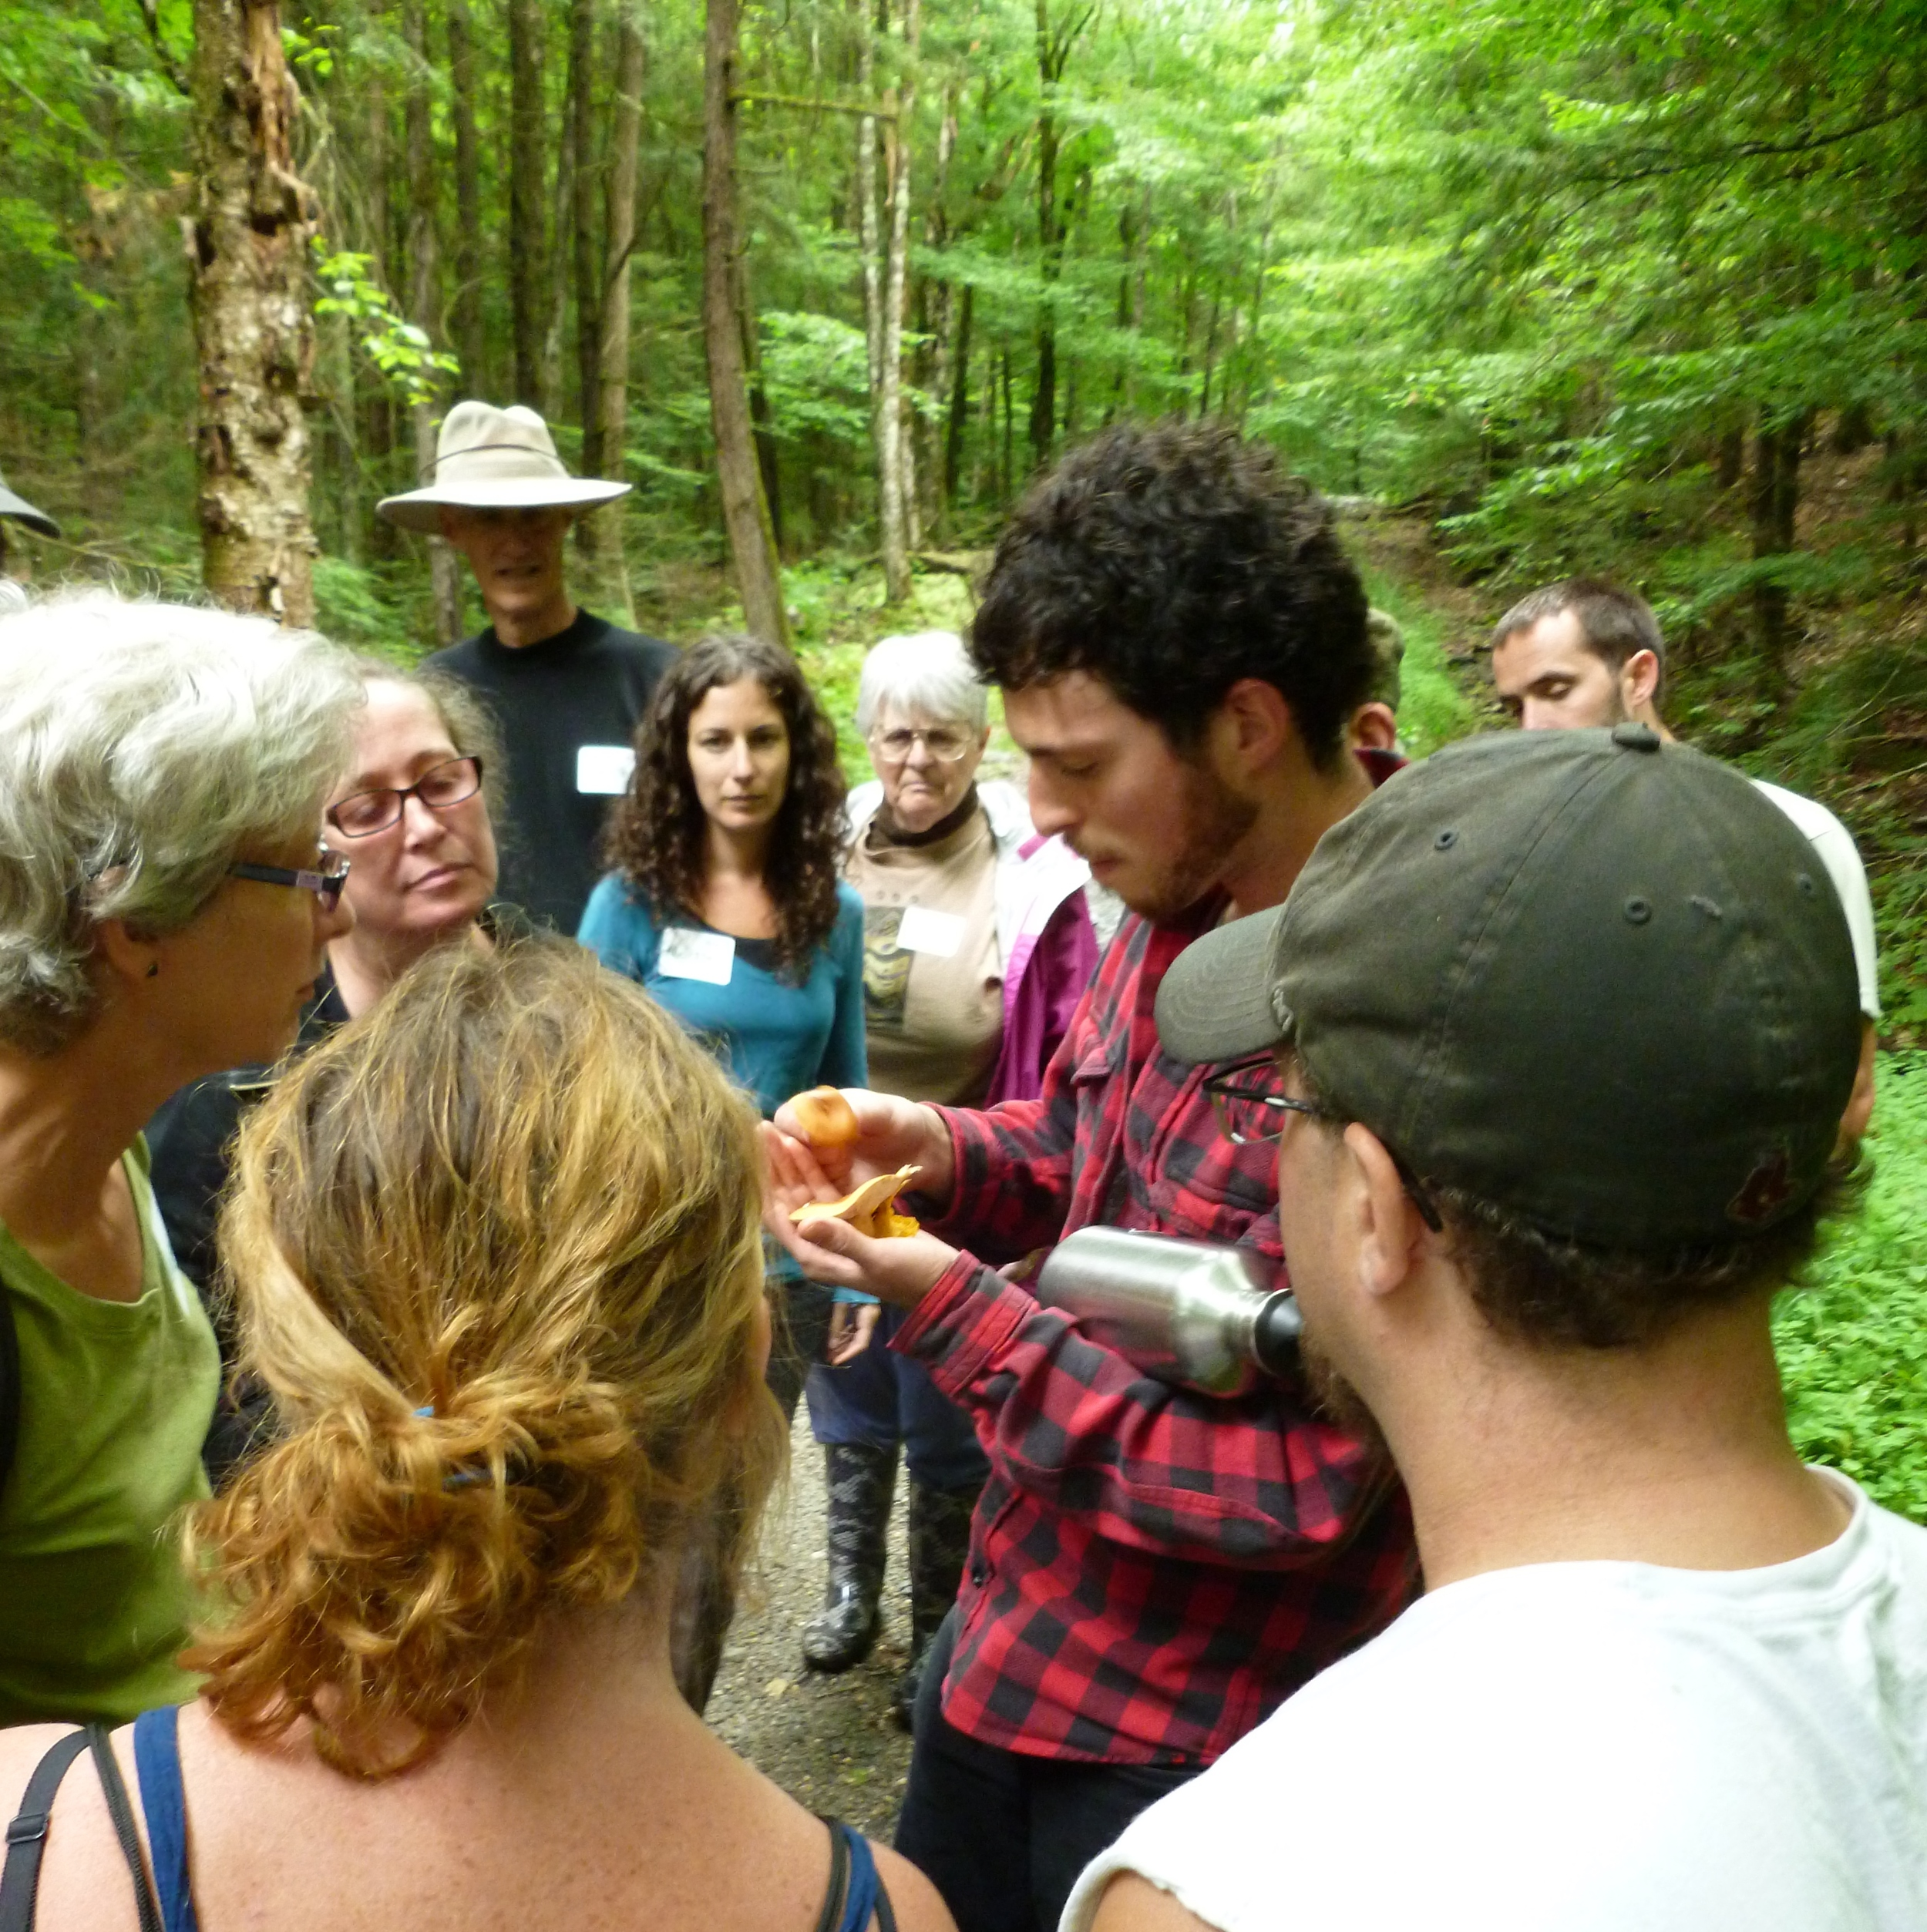 ari rockland-miller engages the audience at the wild world of mushrooms in August